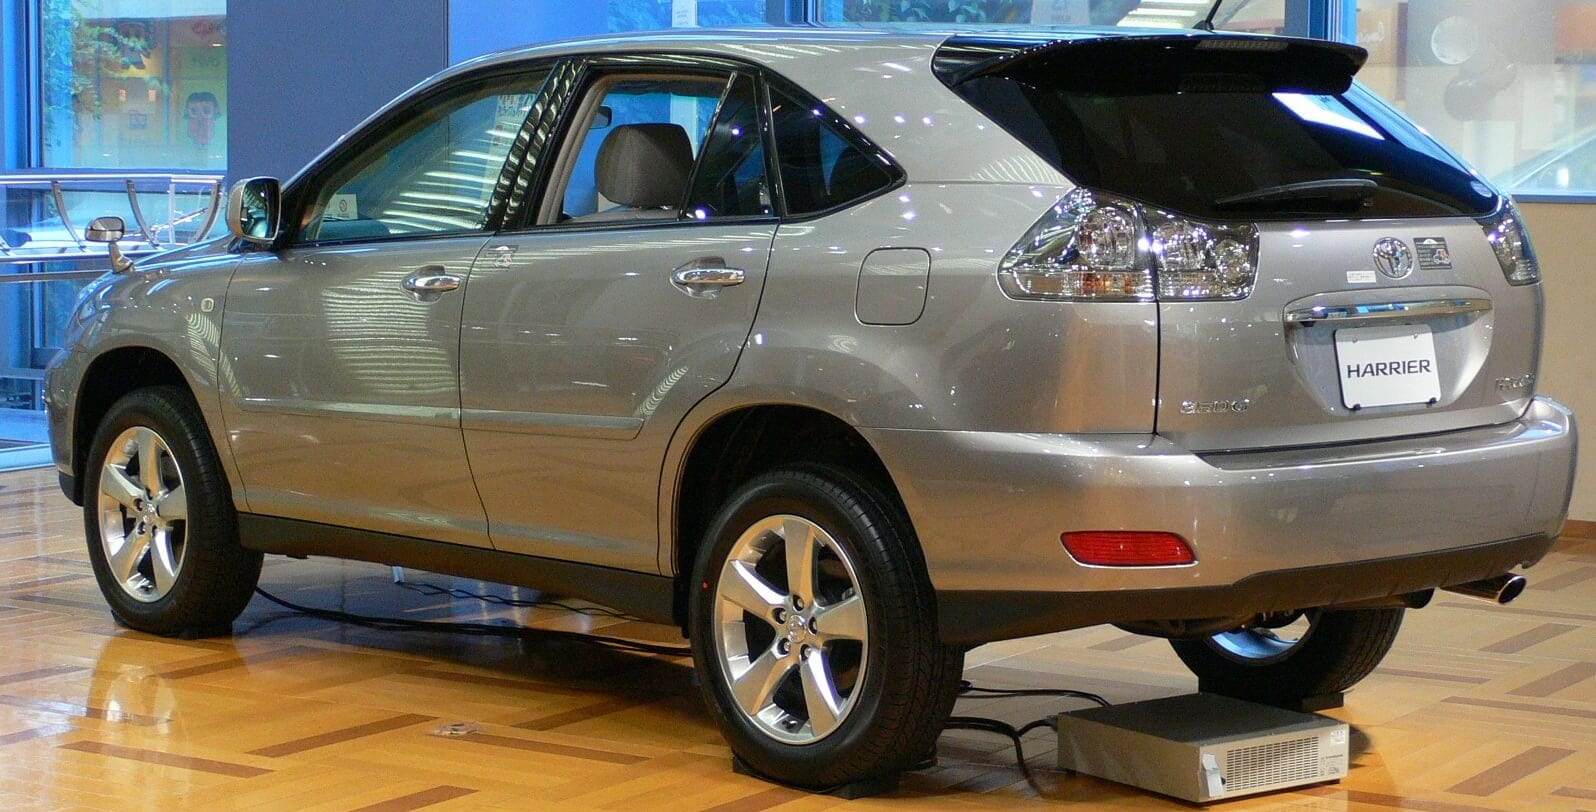 Toyota_harrier_UA-ACU30W_rear_side